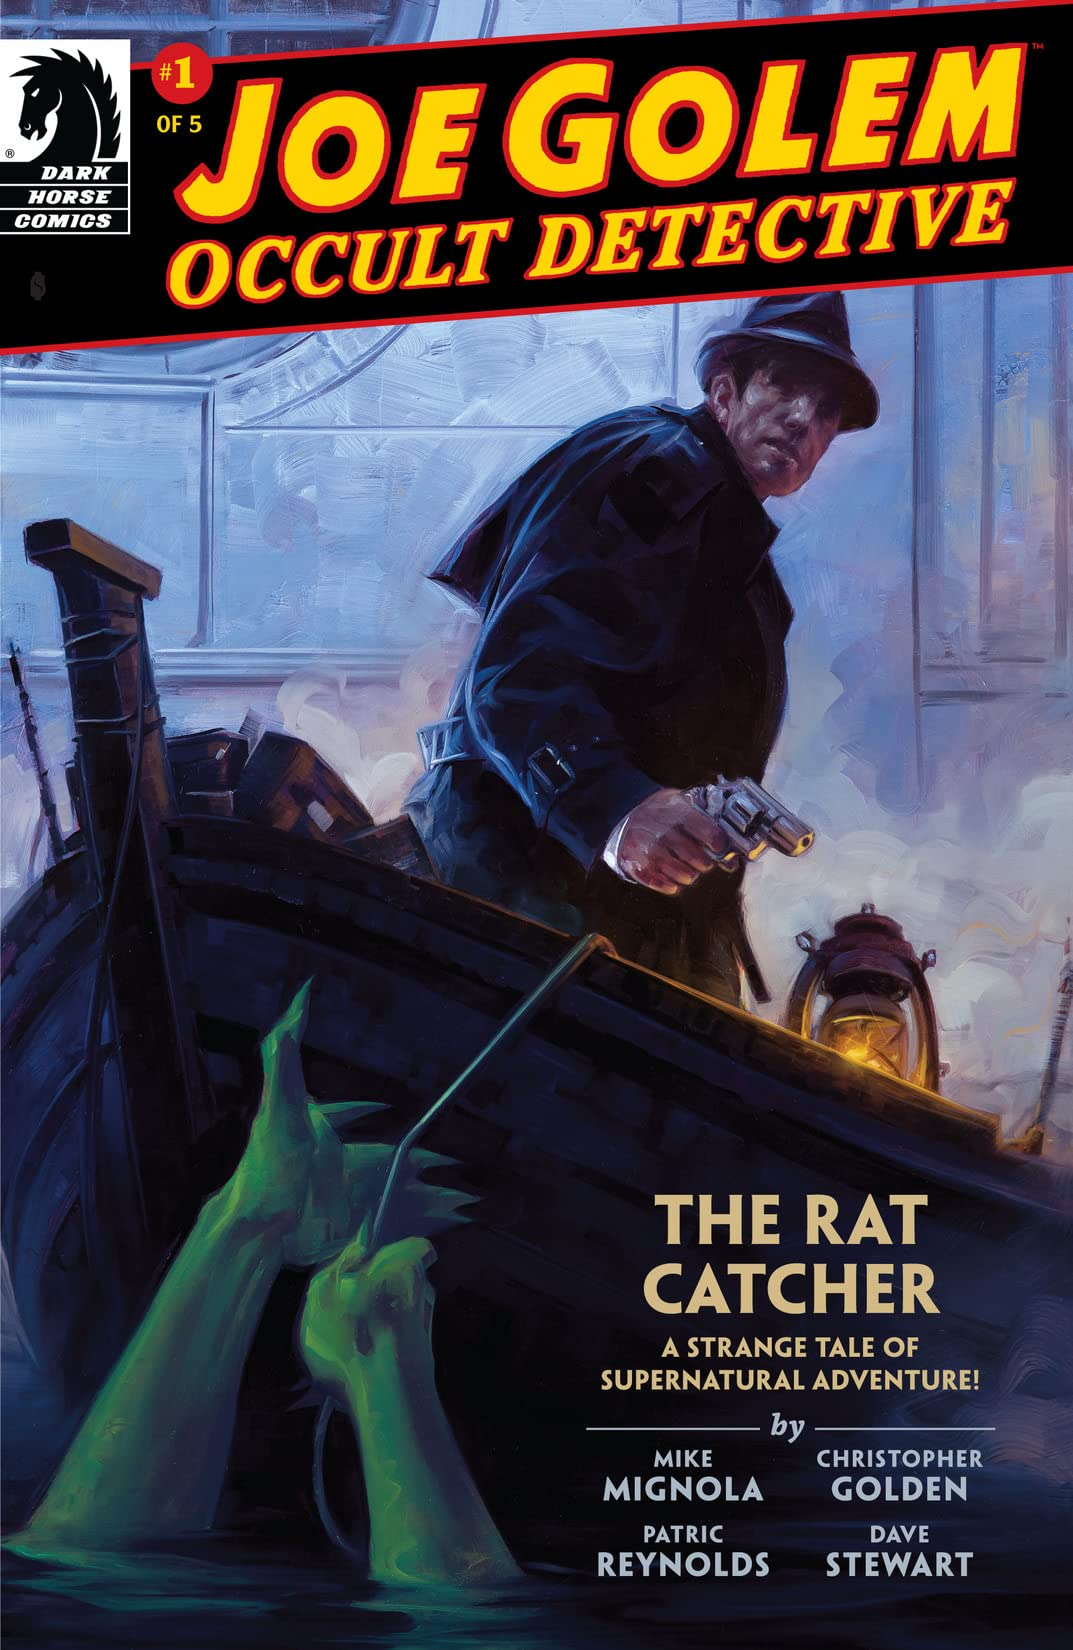 Joe Golem: Occult Detective #1